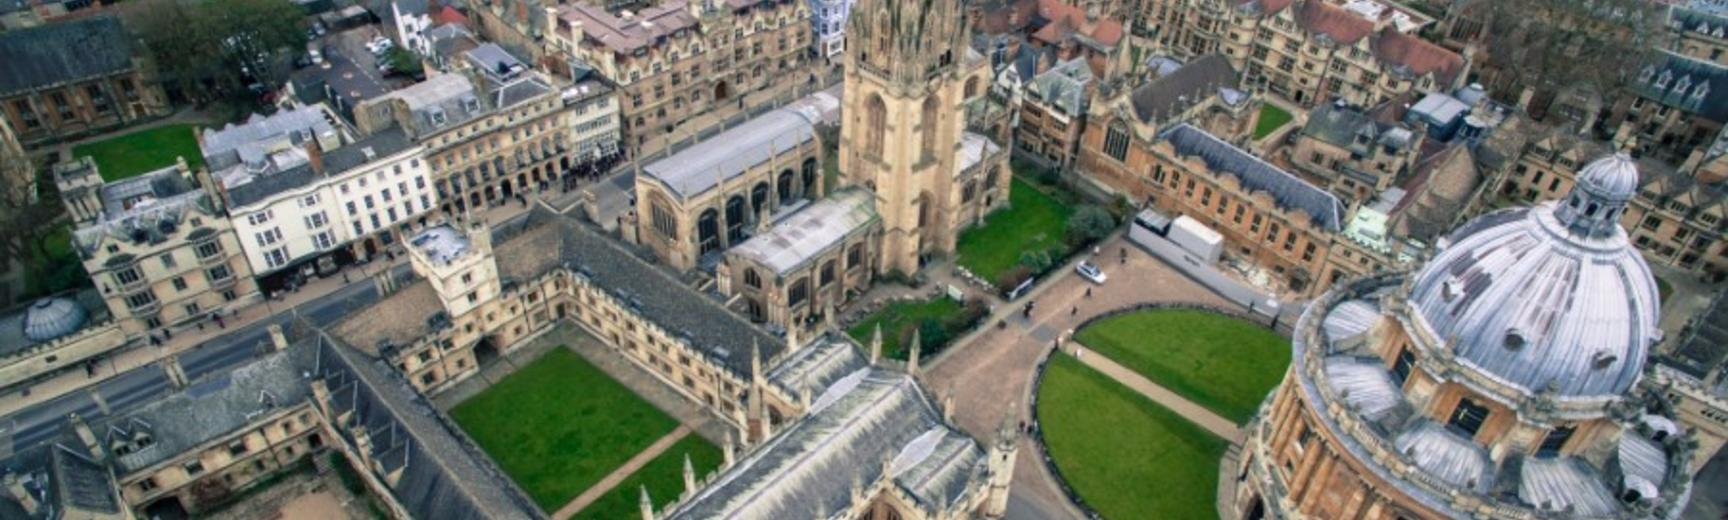 Aerial view of Oxford depicting colleges and green lawns